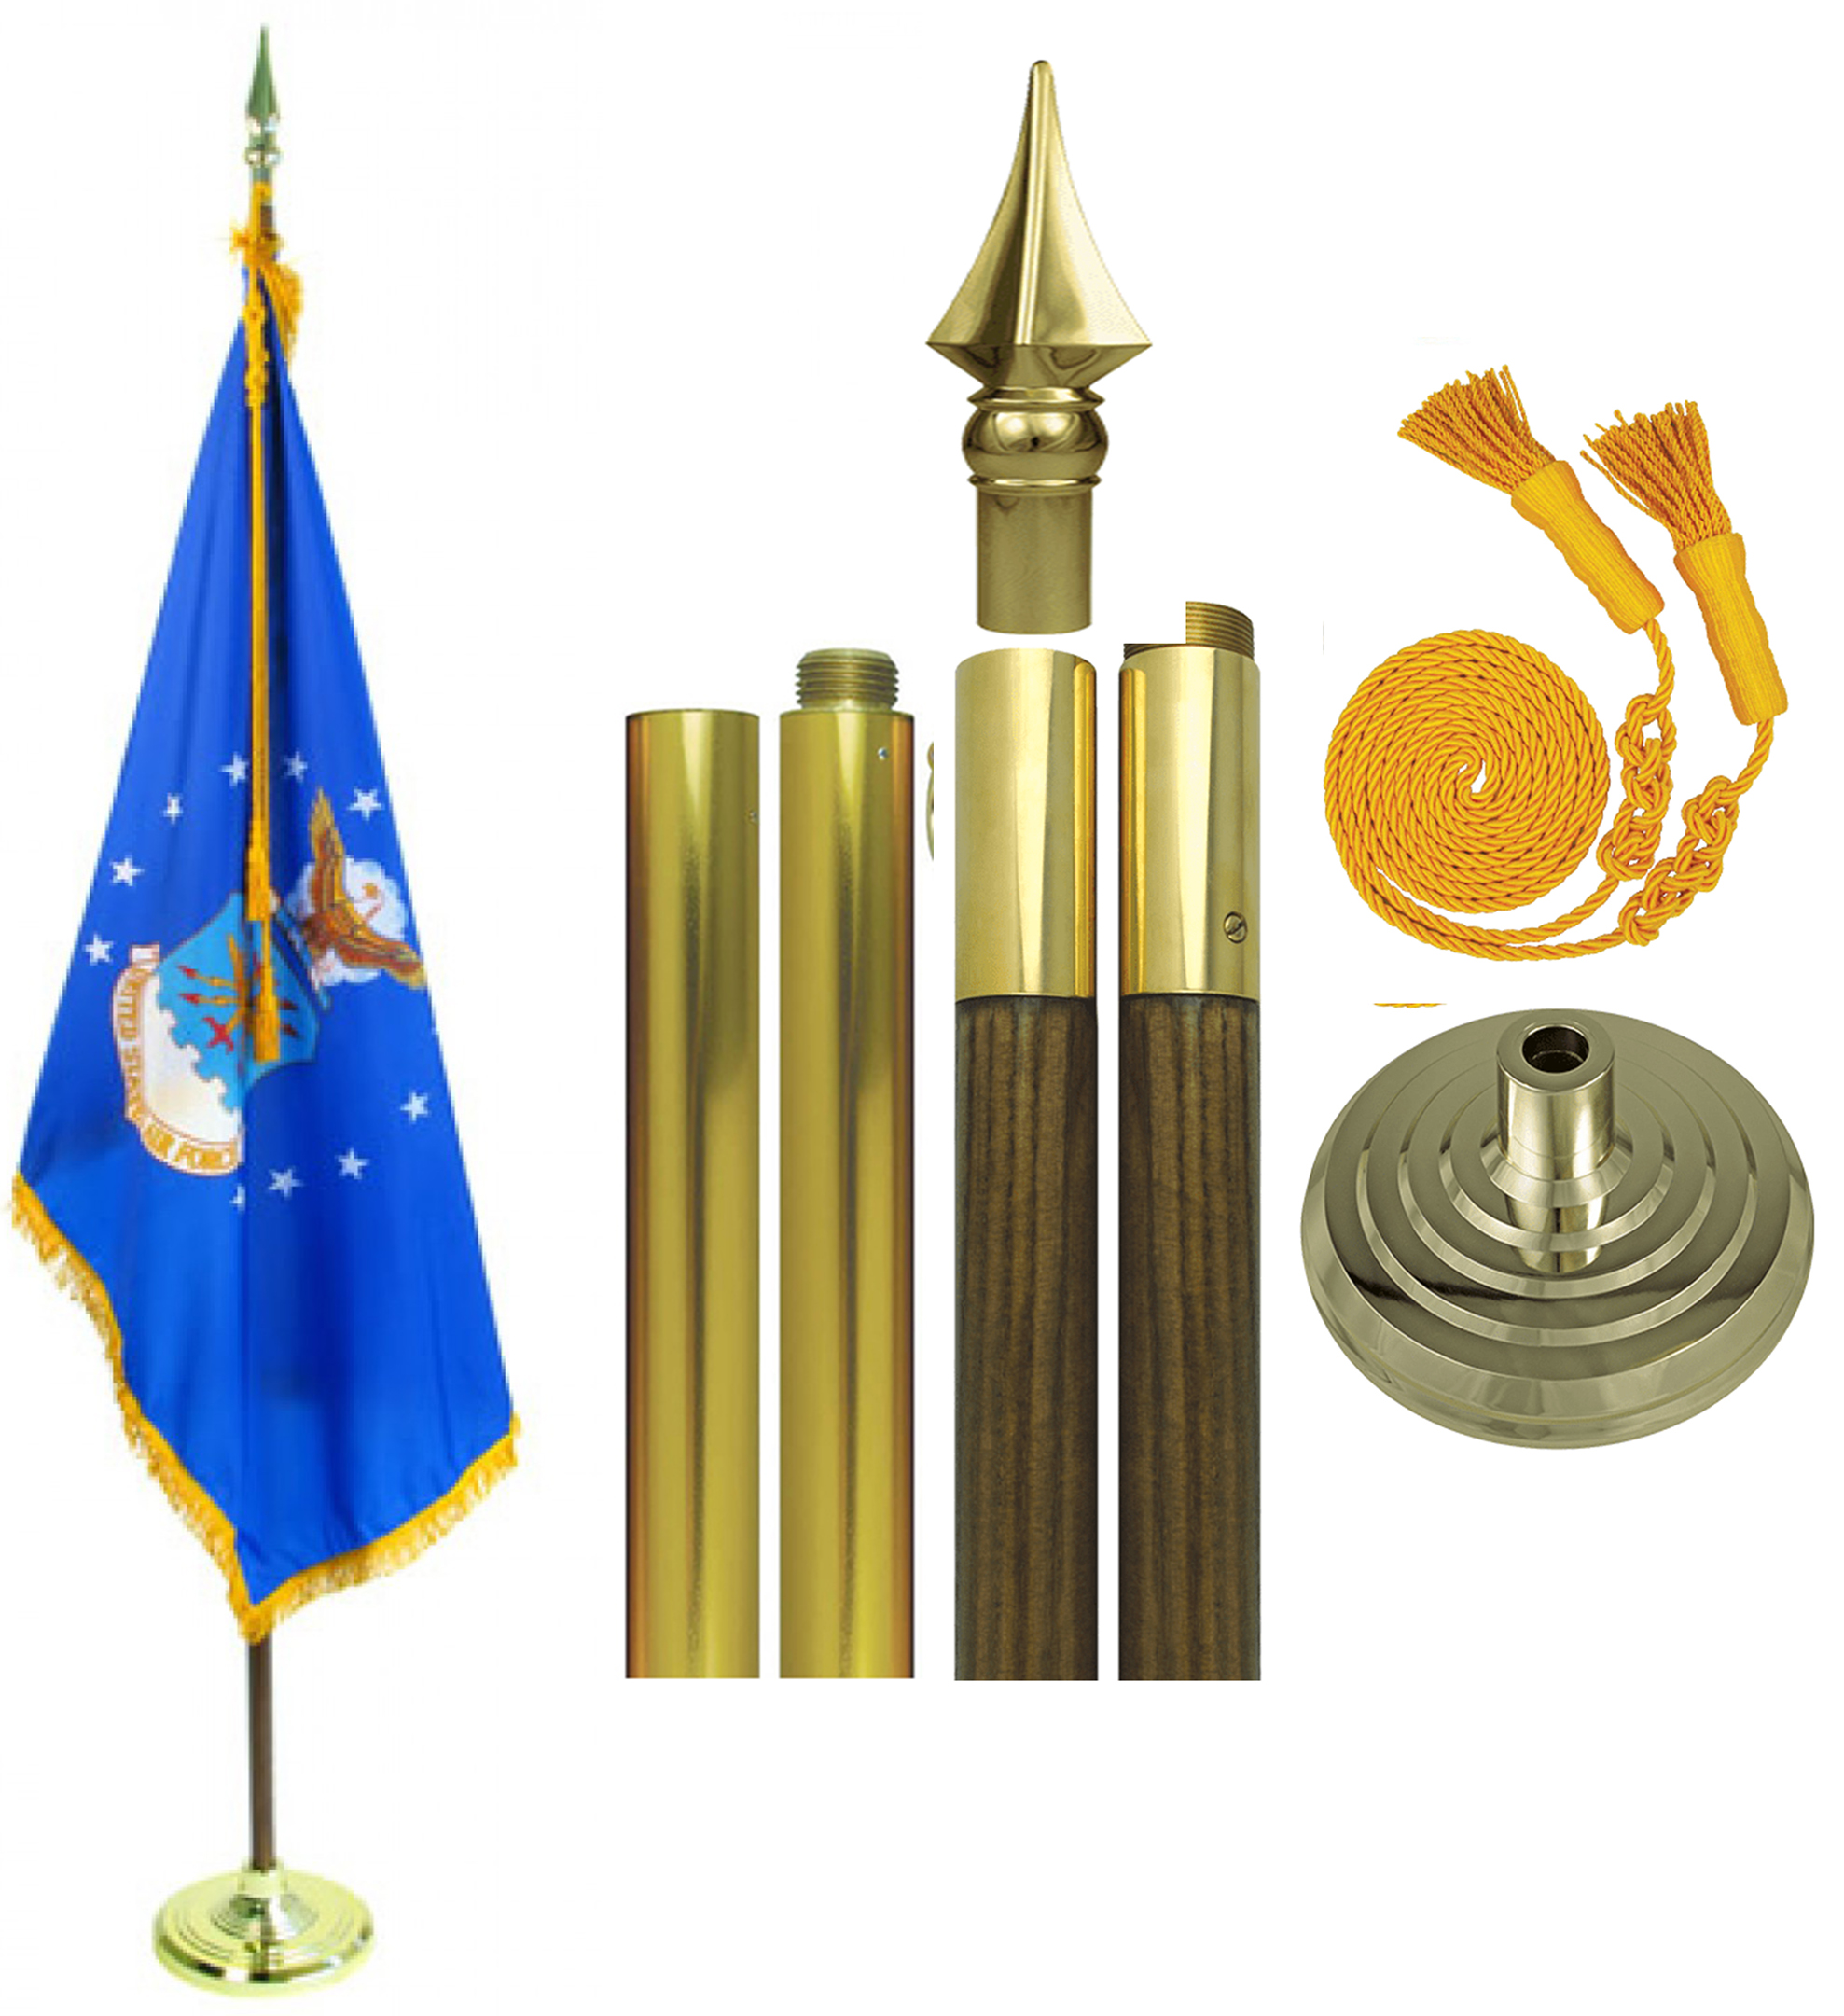 Air Force Parade Flag Sets